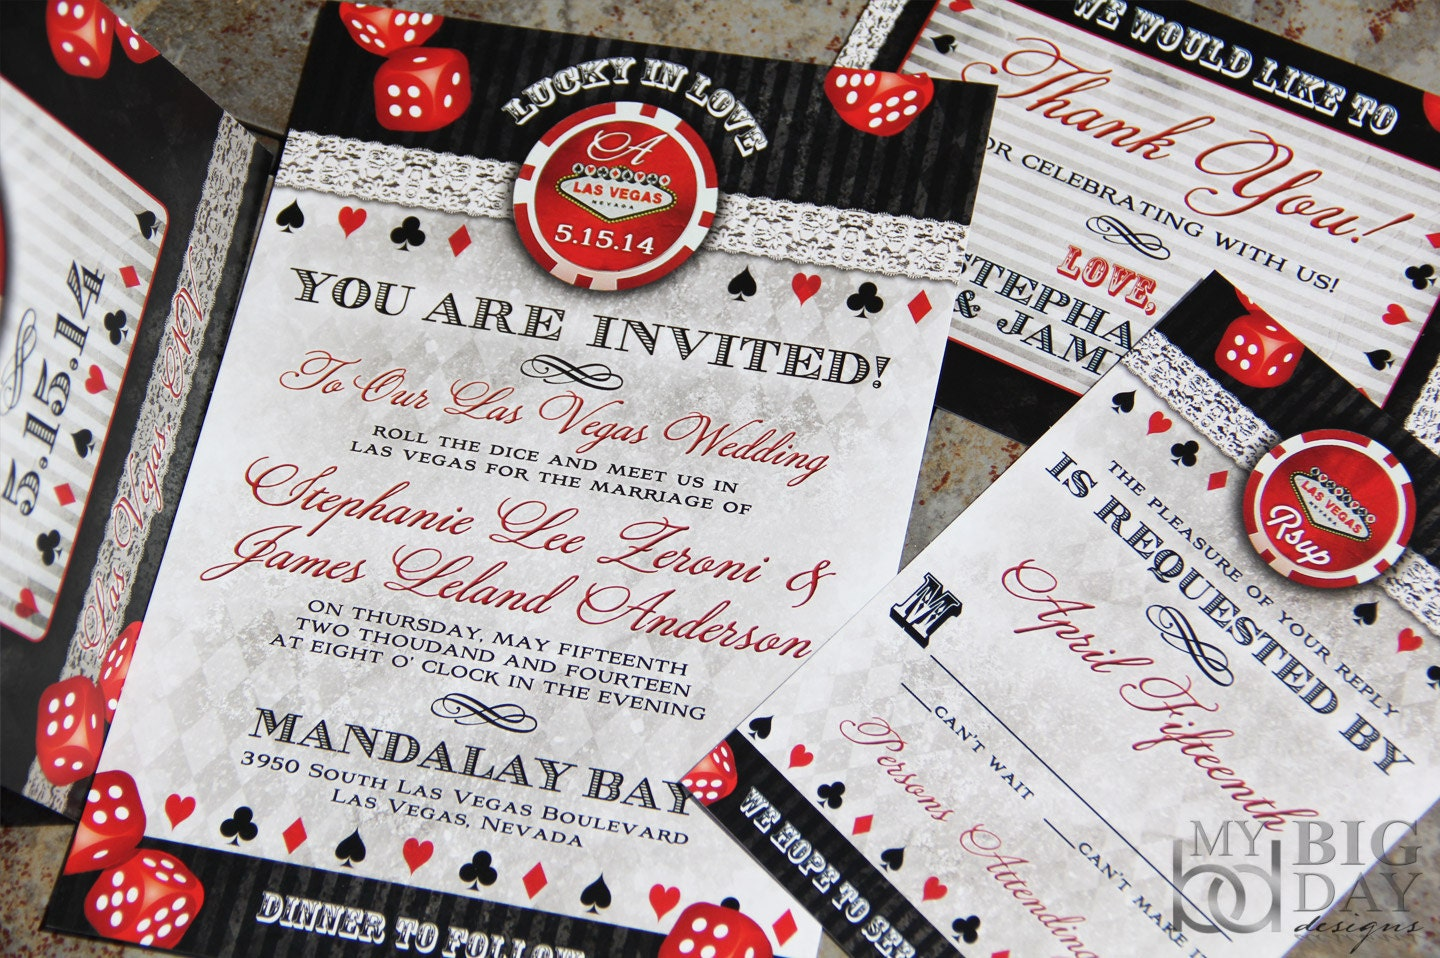 lucky in love las vegas destination wedding invitations. vegas, Wedding invitations